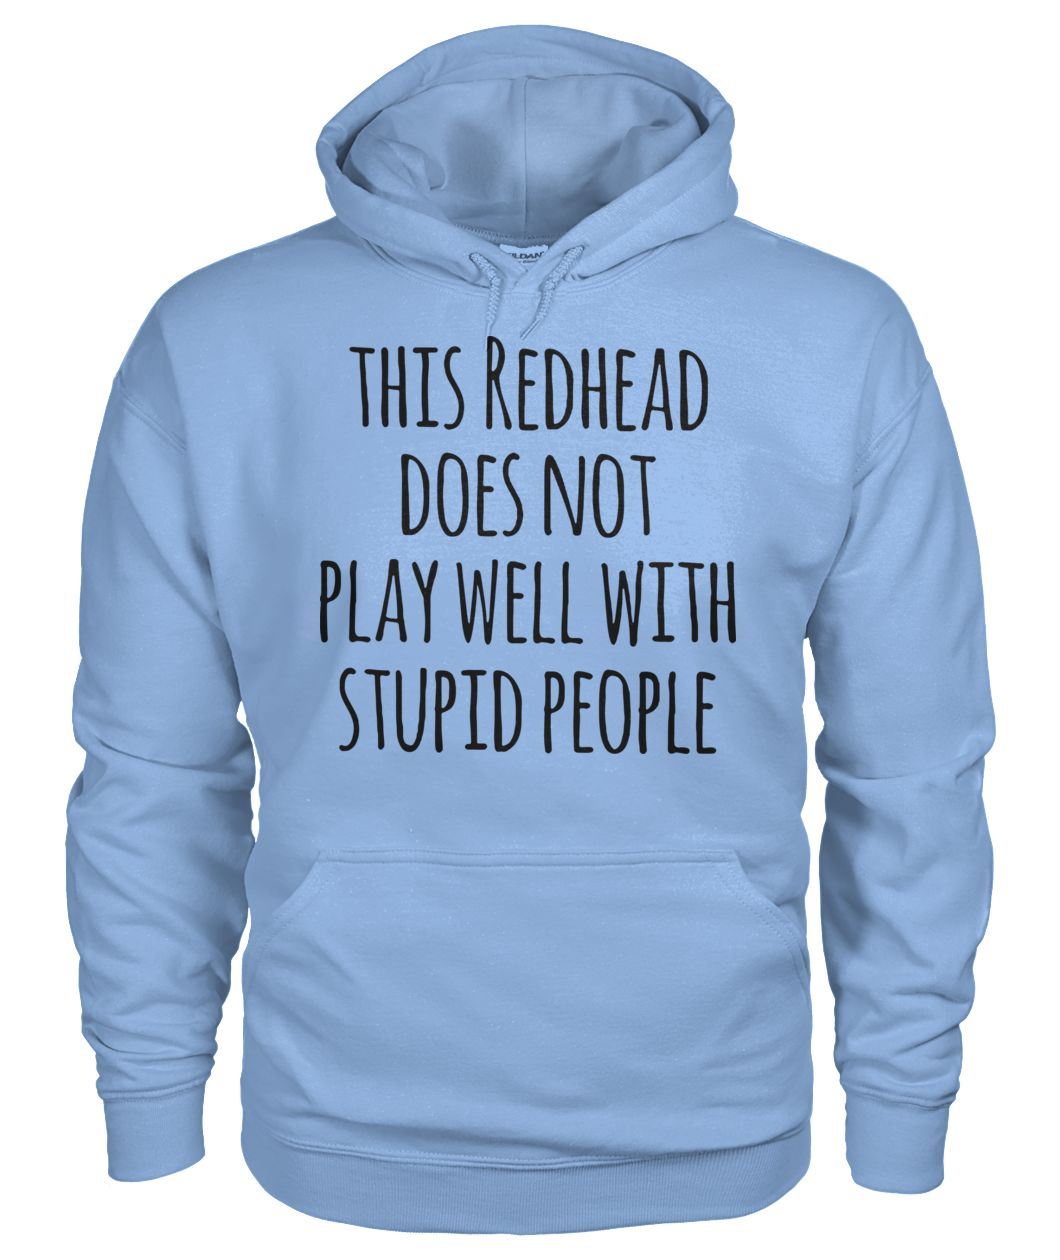 This redhead does not play well with stupid people gildan hoodie